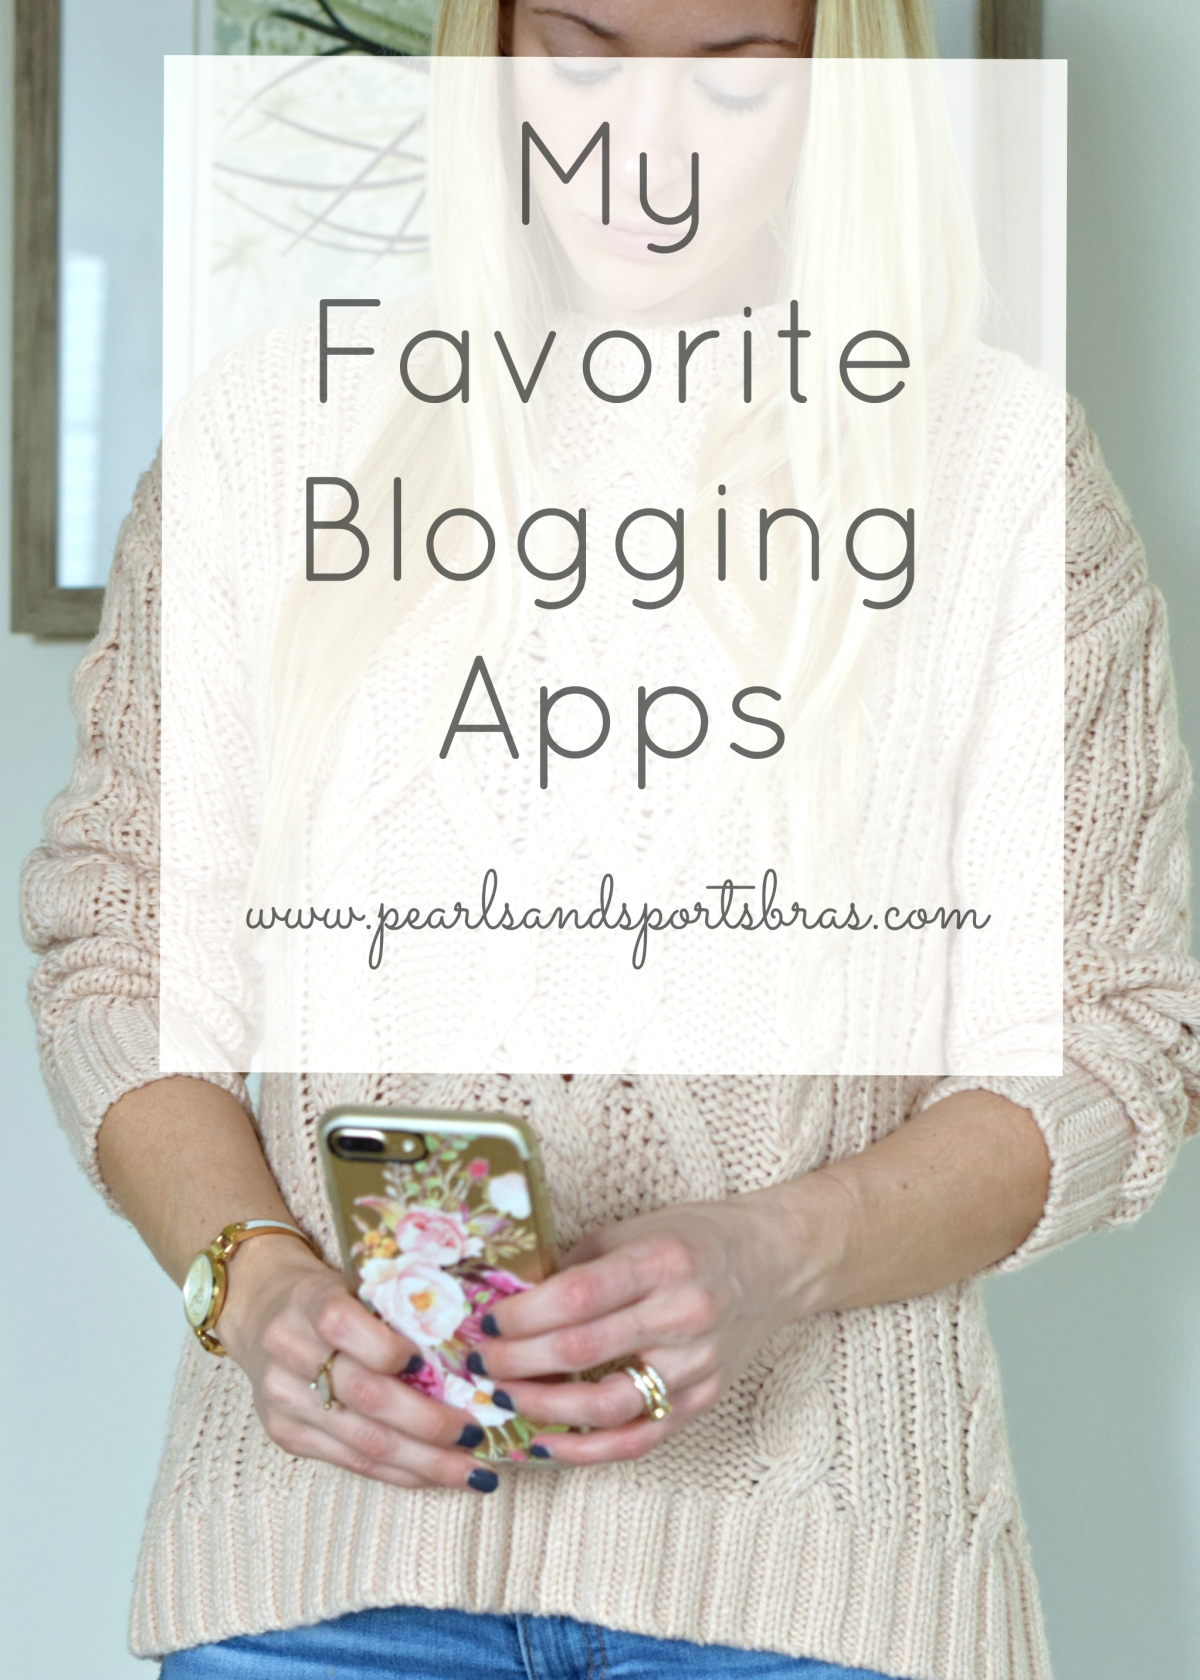 My Favorite Blogging Apps |www.pearlsandsportsbras.com|